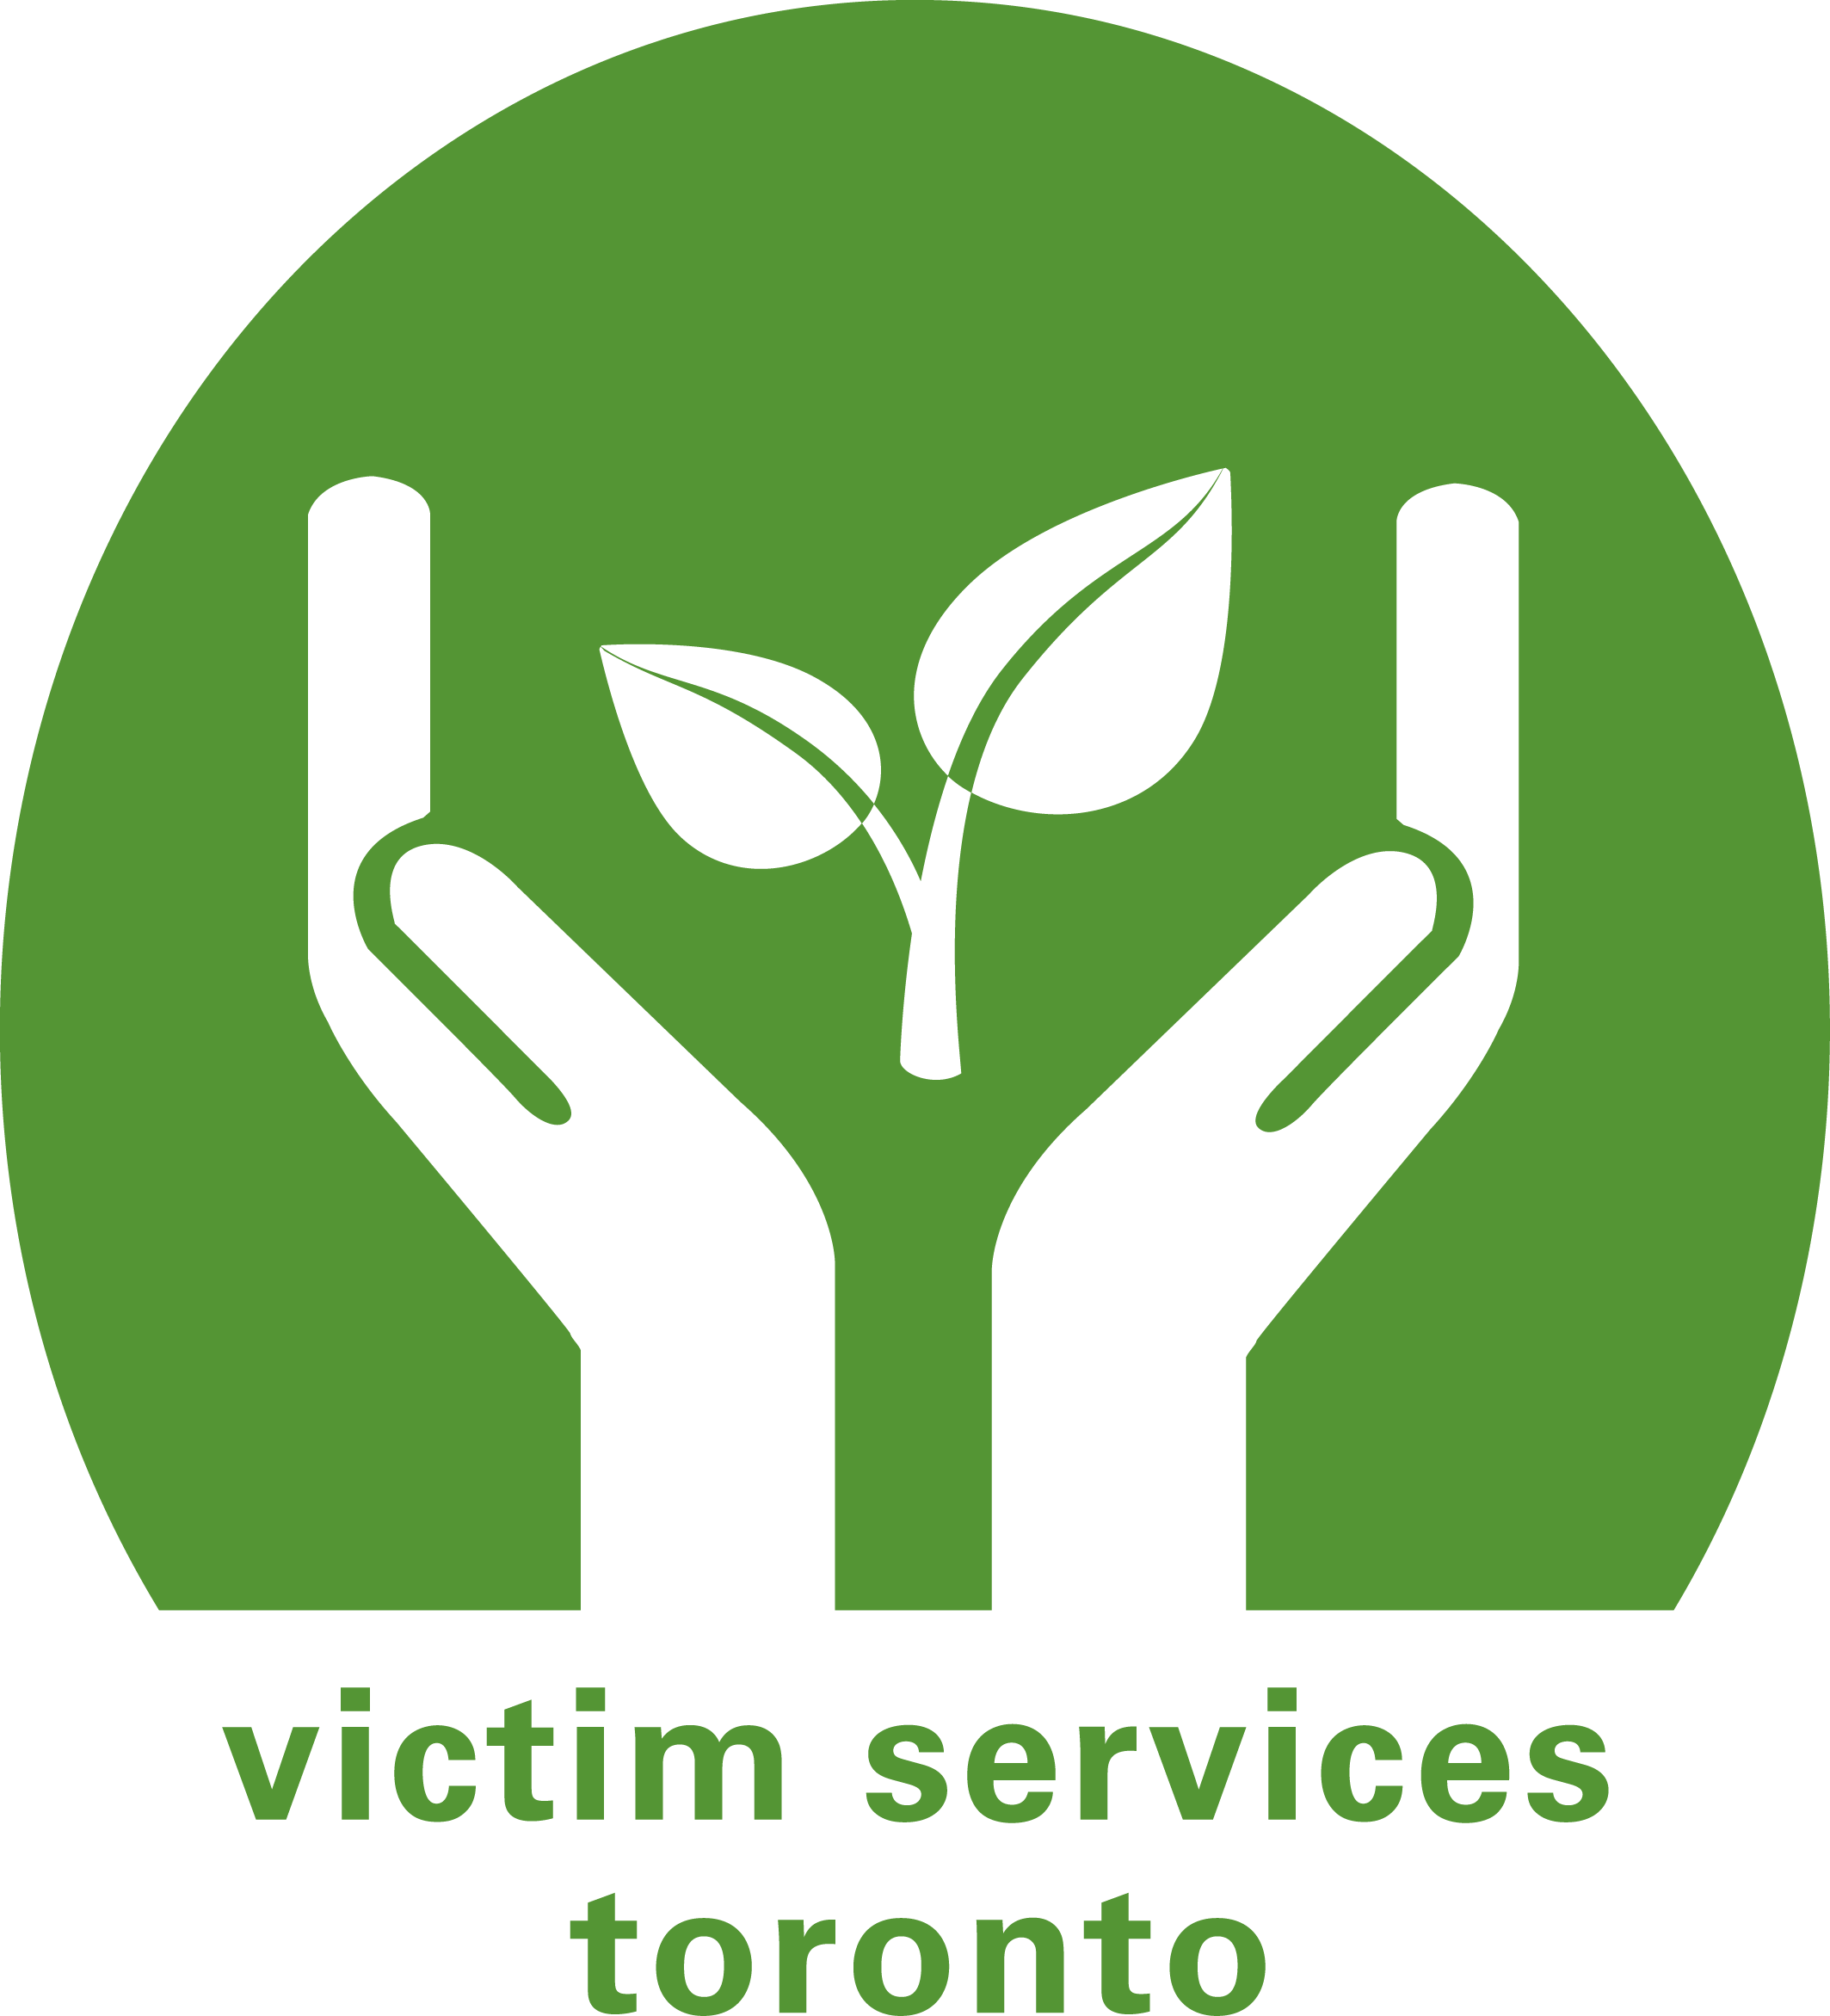 vst_logo_Vertical_BRANDAID_new_Green.png